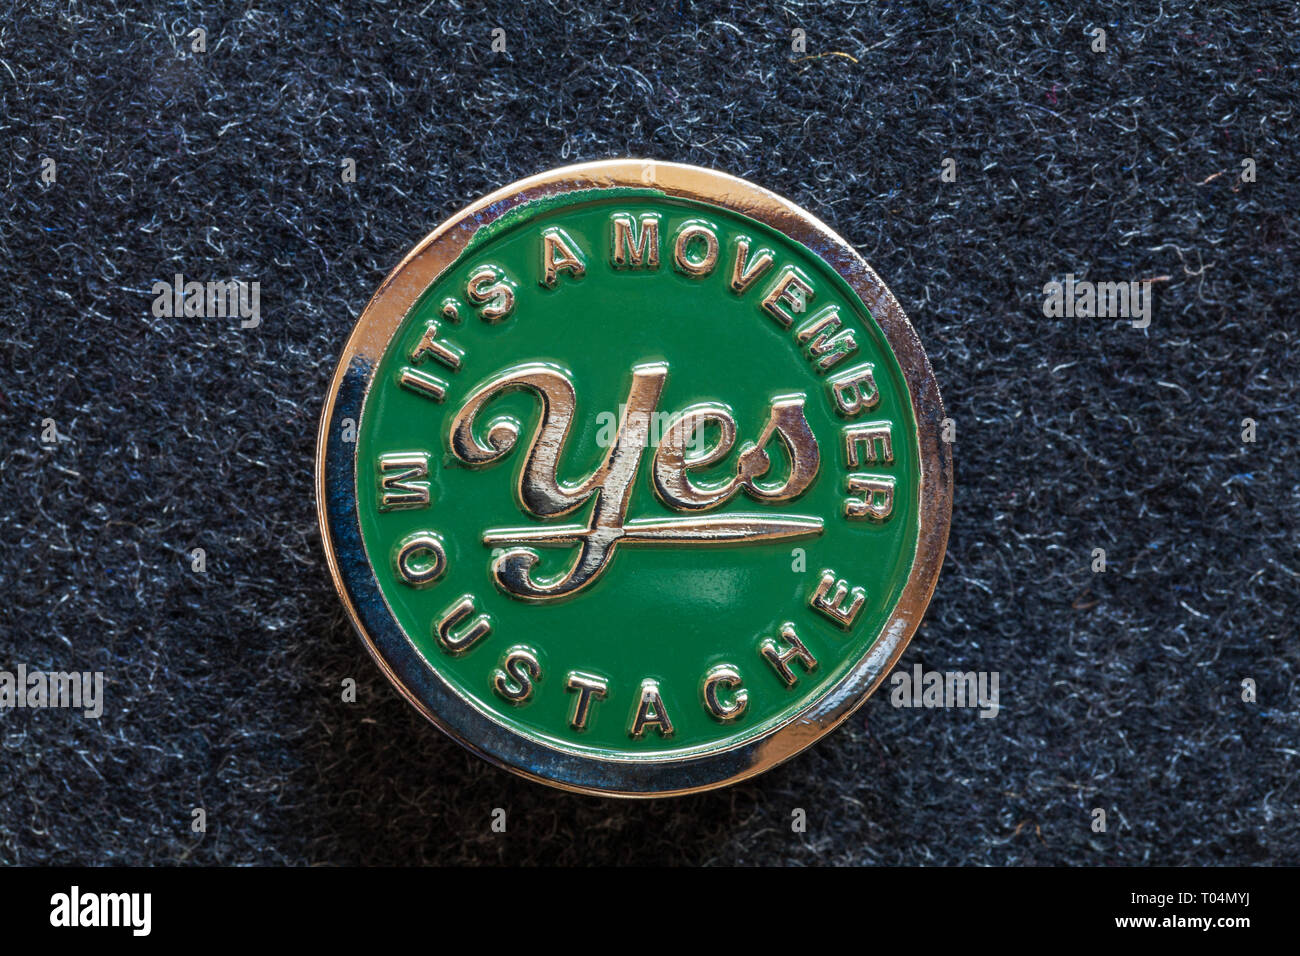 Movember pin badge from Movember Foundation helping men live happier, healthier, longer lives - it's a Movember Moustache yes - Stock Image